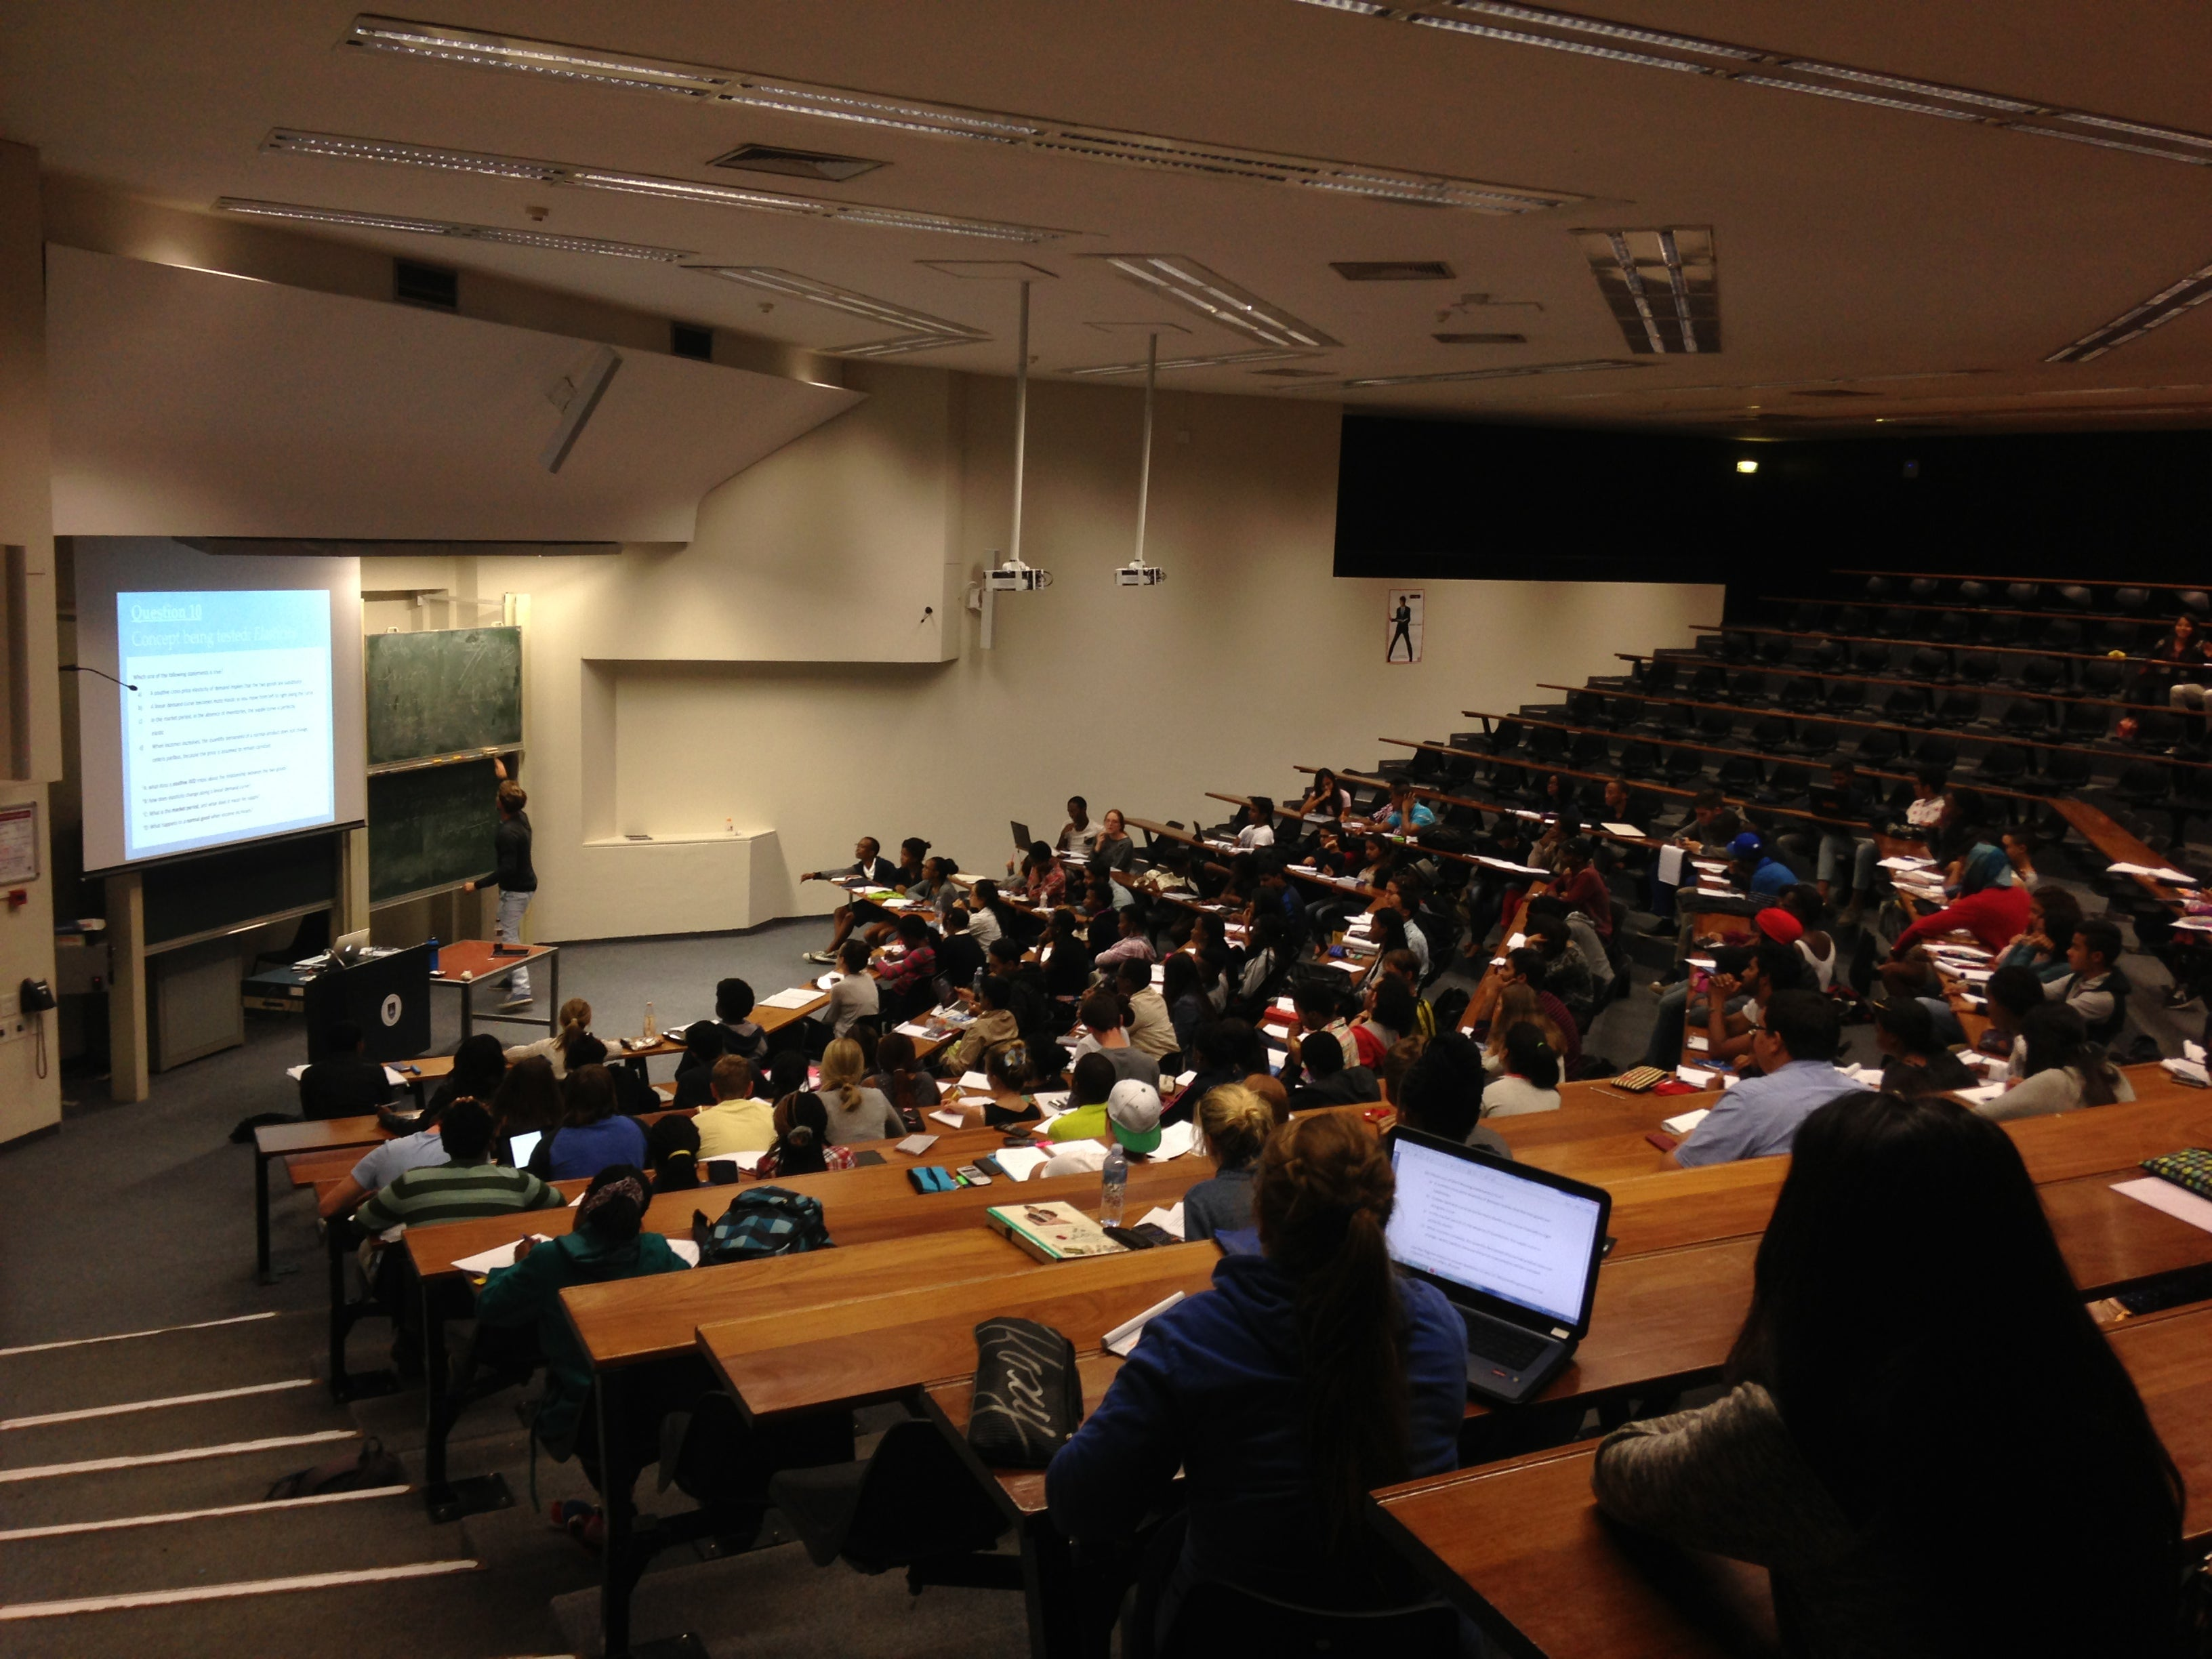 Oxford lecture theatre